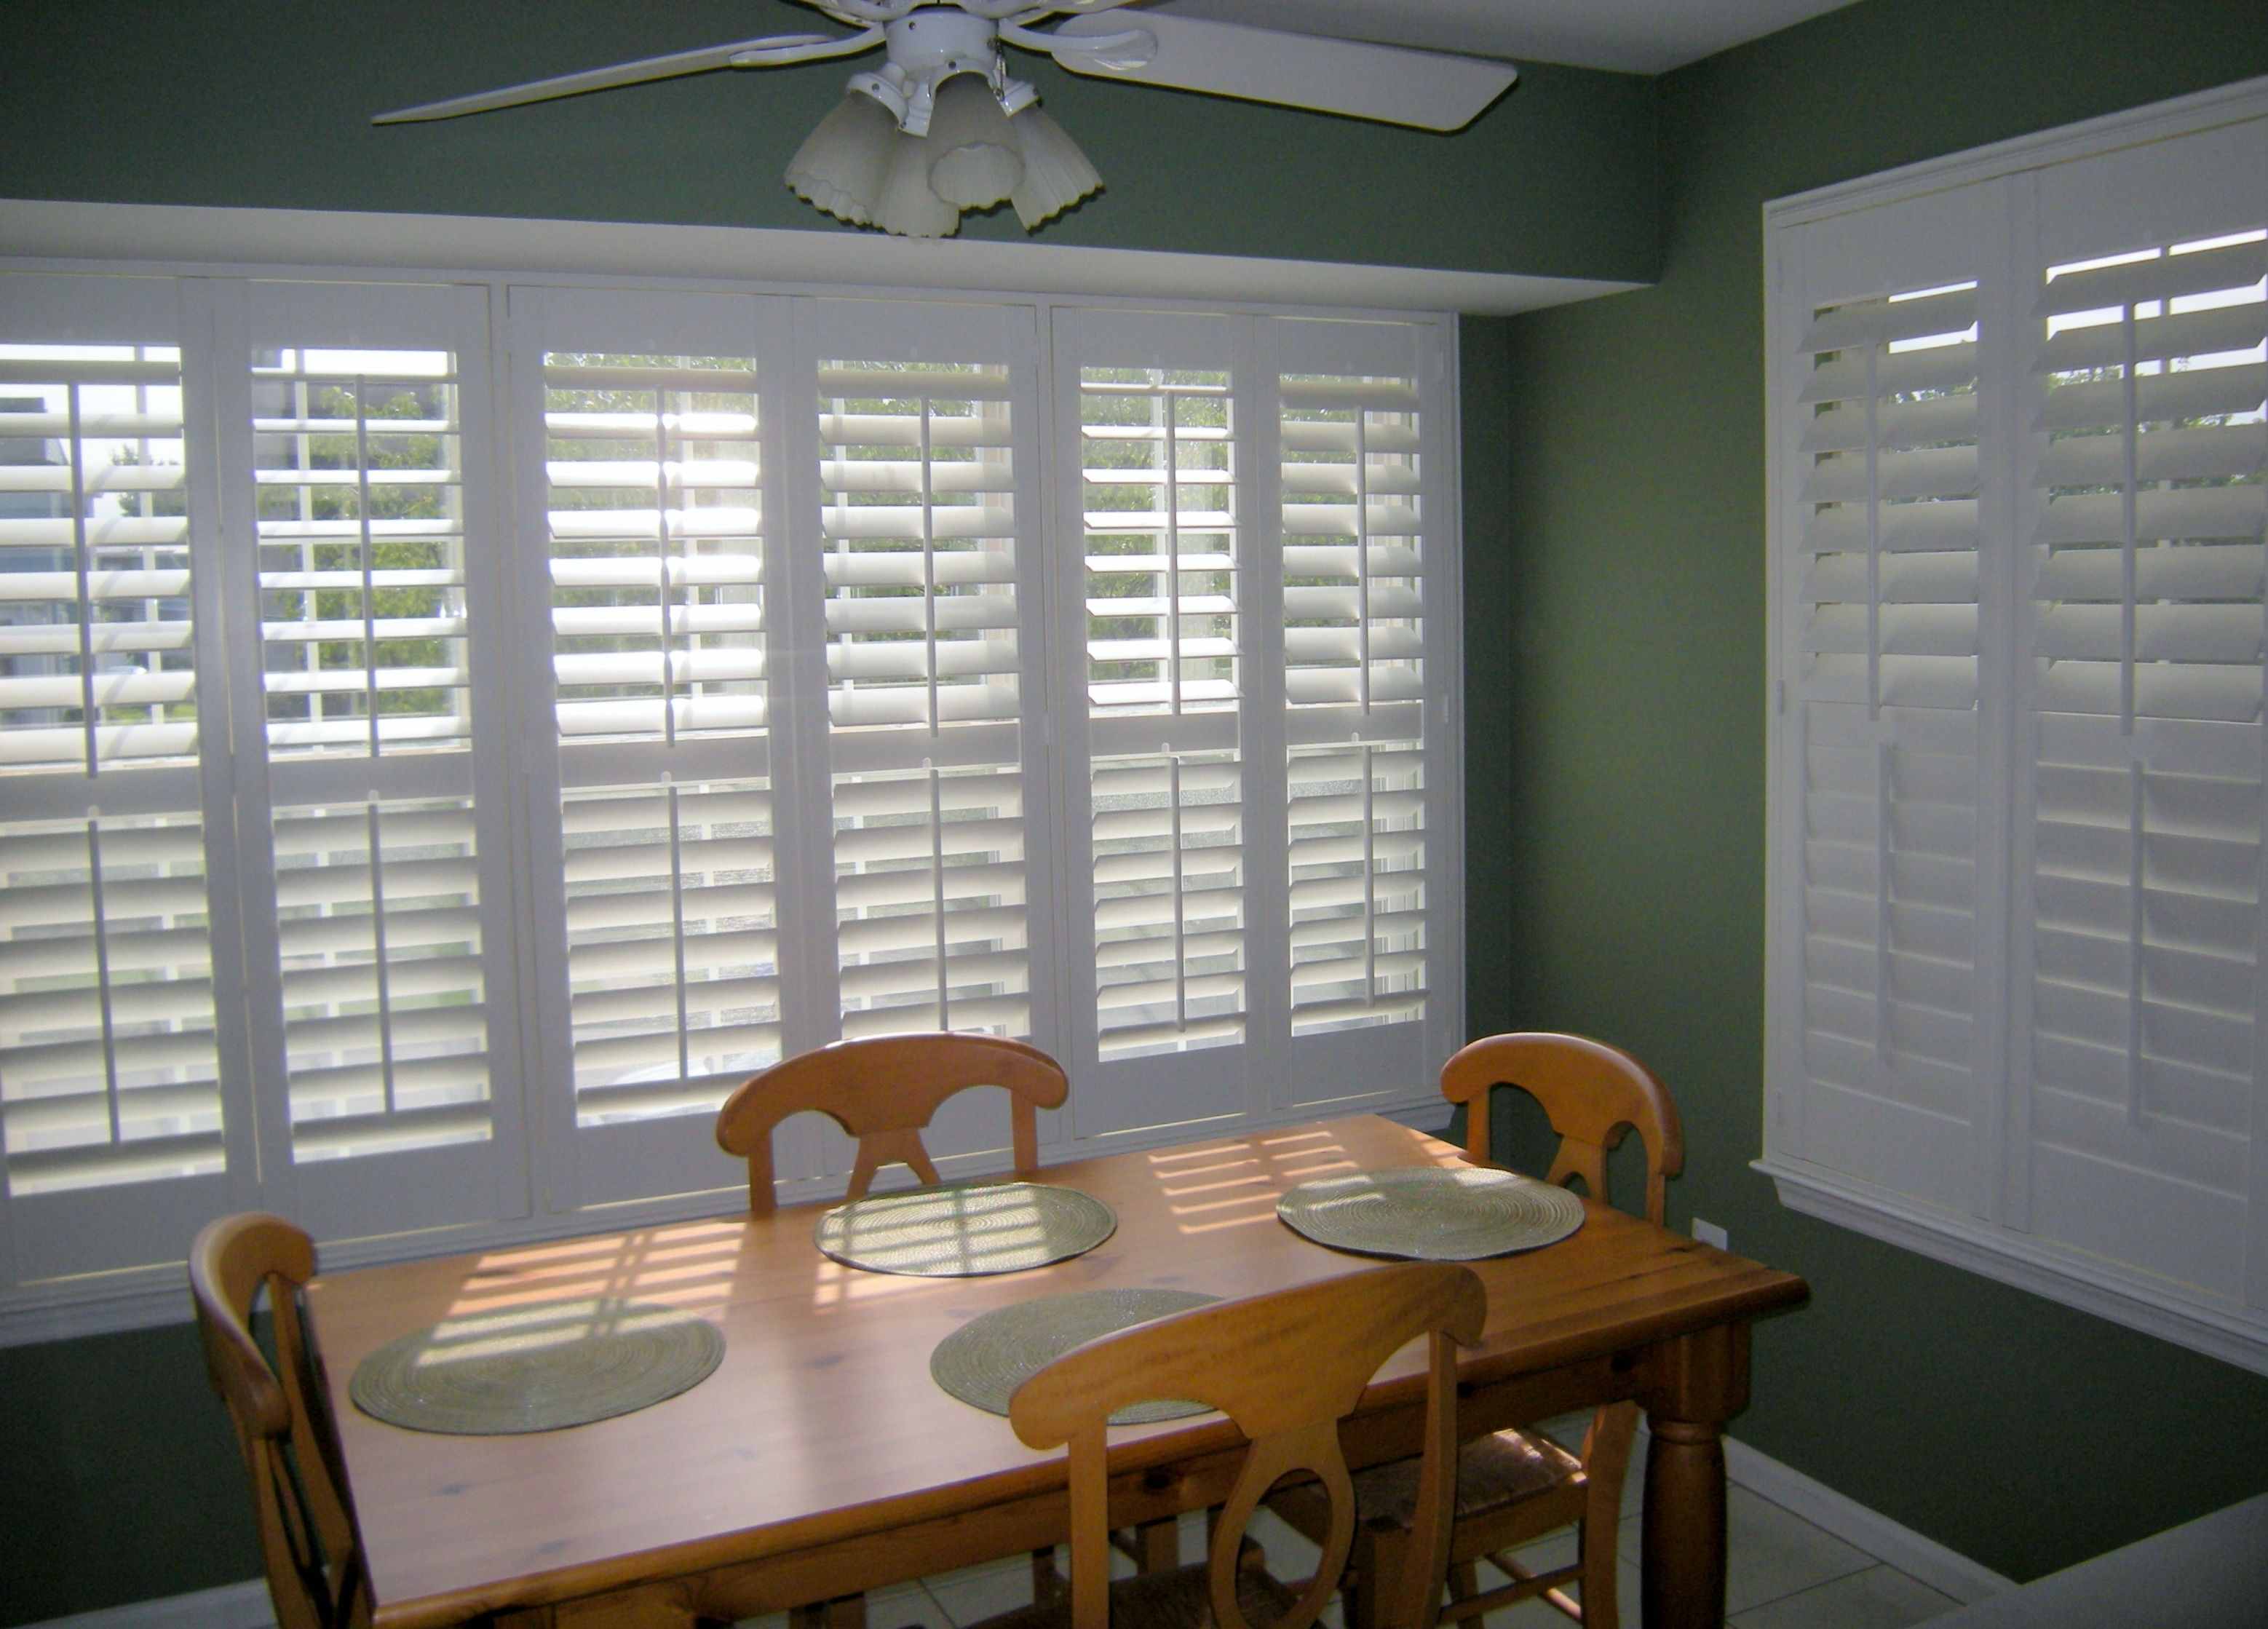 york louvres window pearl tilt bathroom for much waterproof faux composite hidden with windows and vs in interior shutteredbeautifully lowes beautifully cost colour do wood vinyl plantation shutters exterior home how large depot